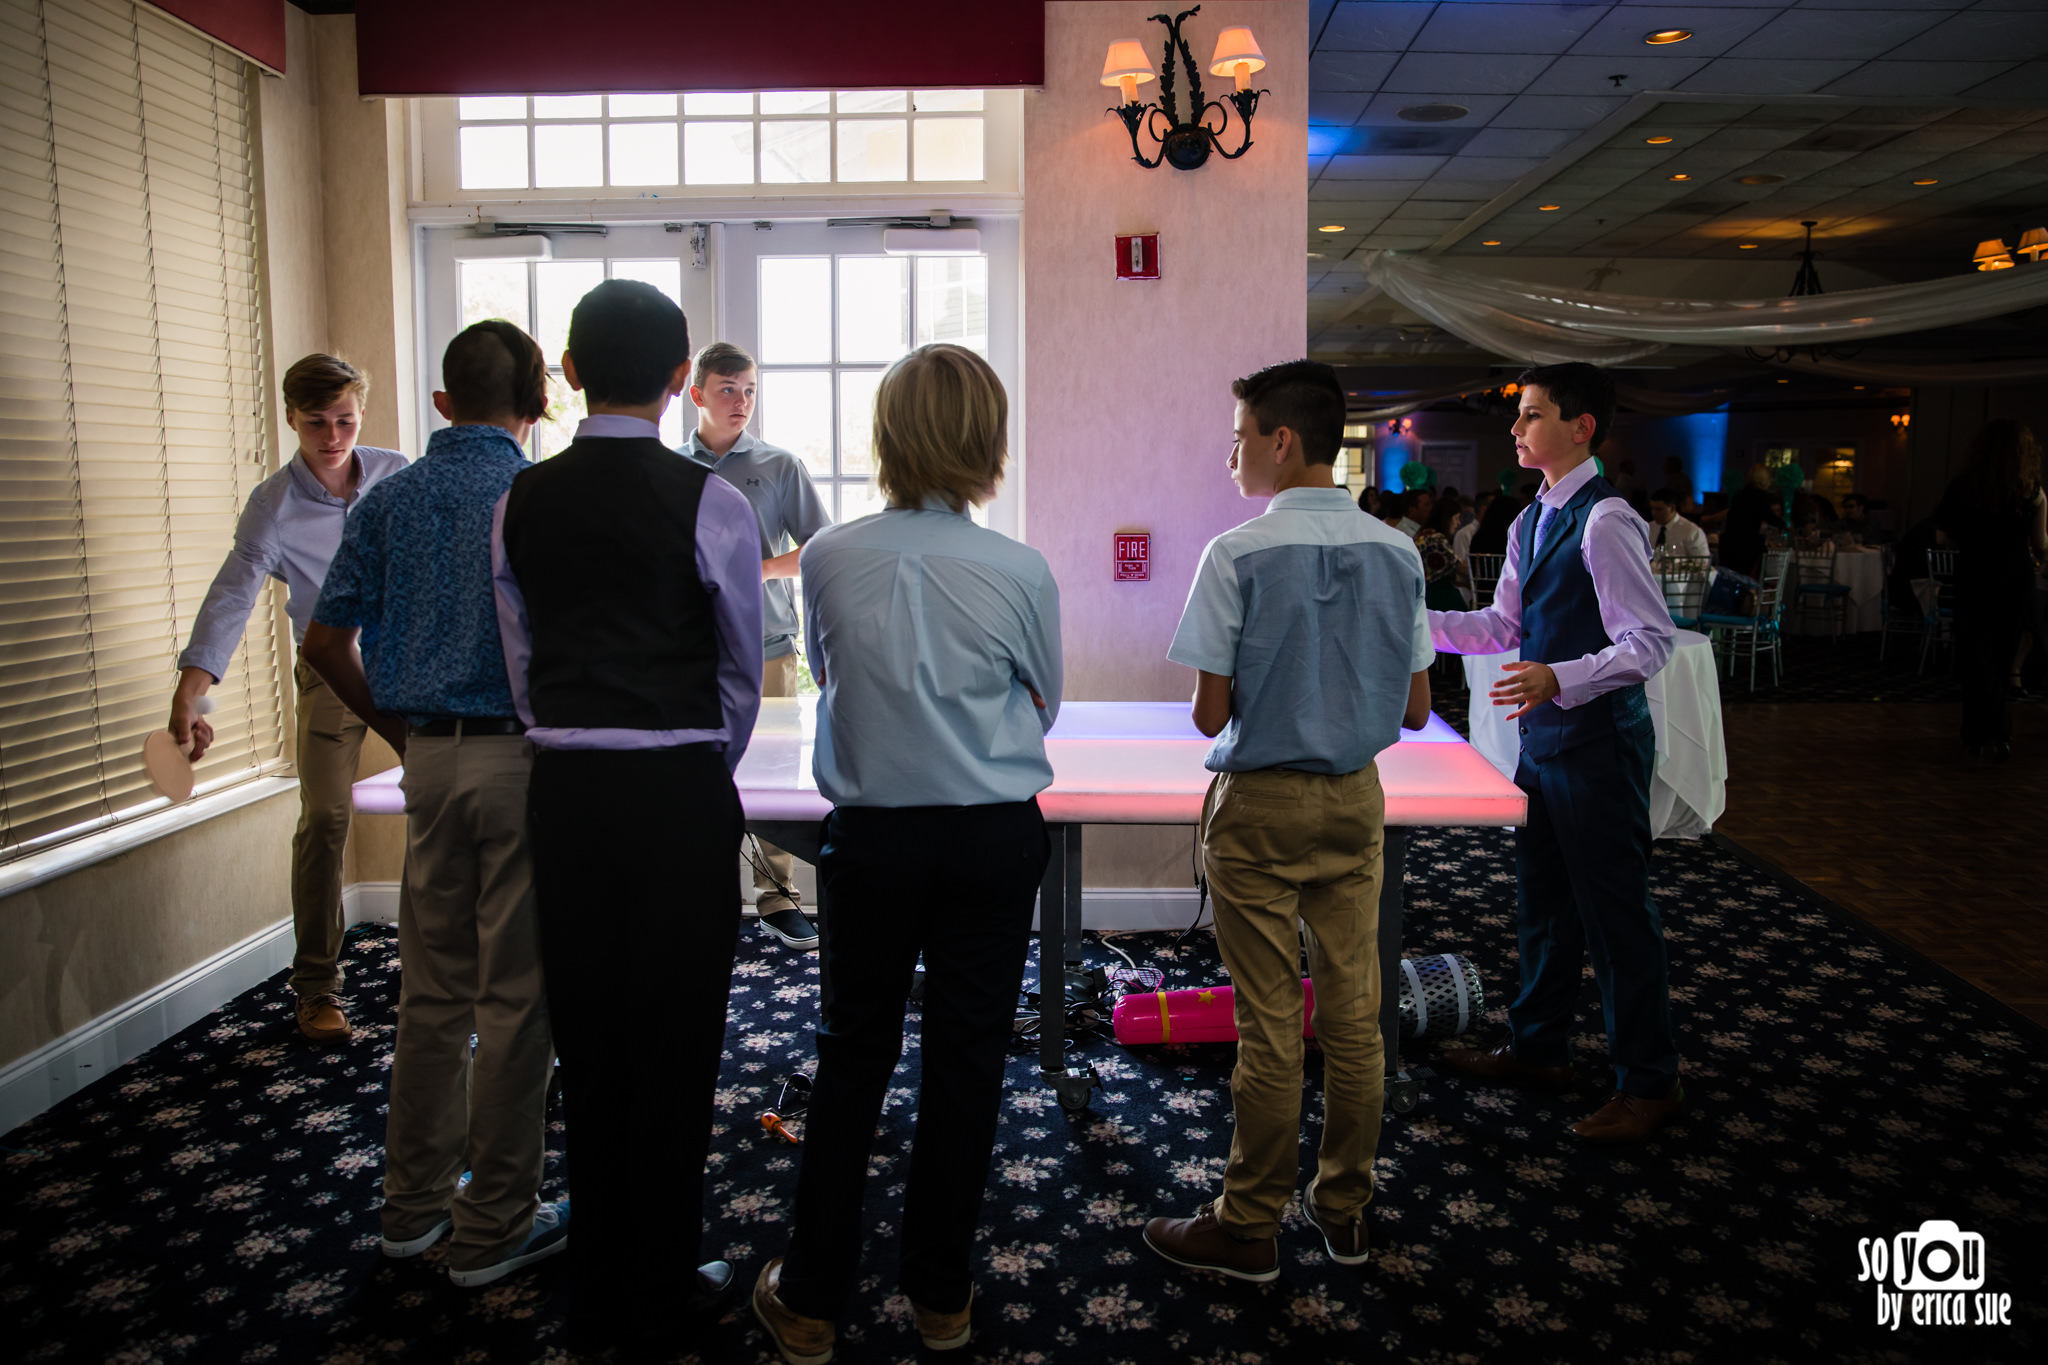 so-you-by-erica-sue-bnai-mitzvah-photographer-delray-beach-golf-club-fl-3499.jpg